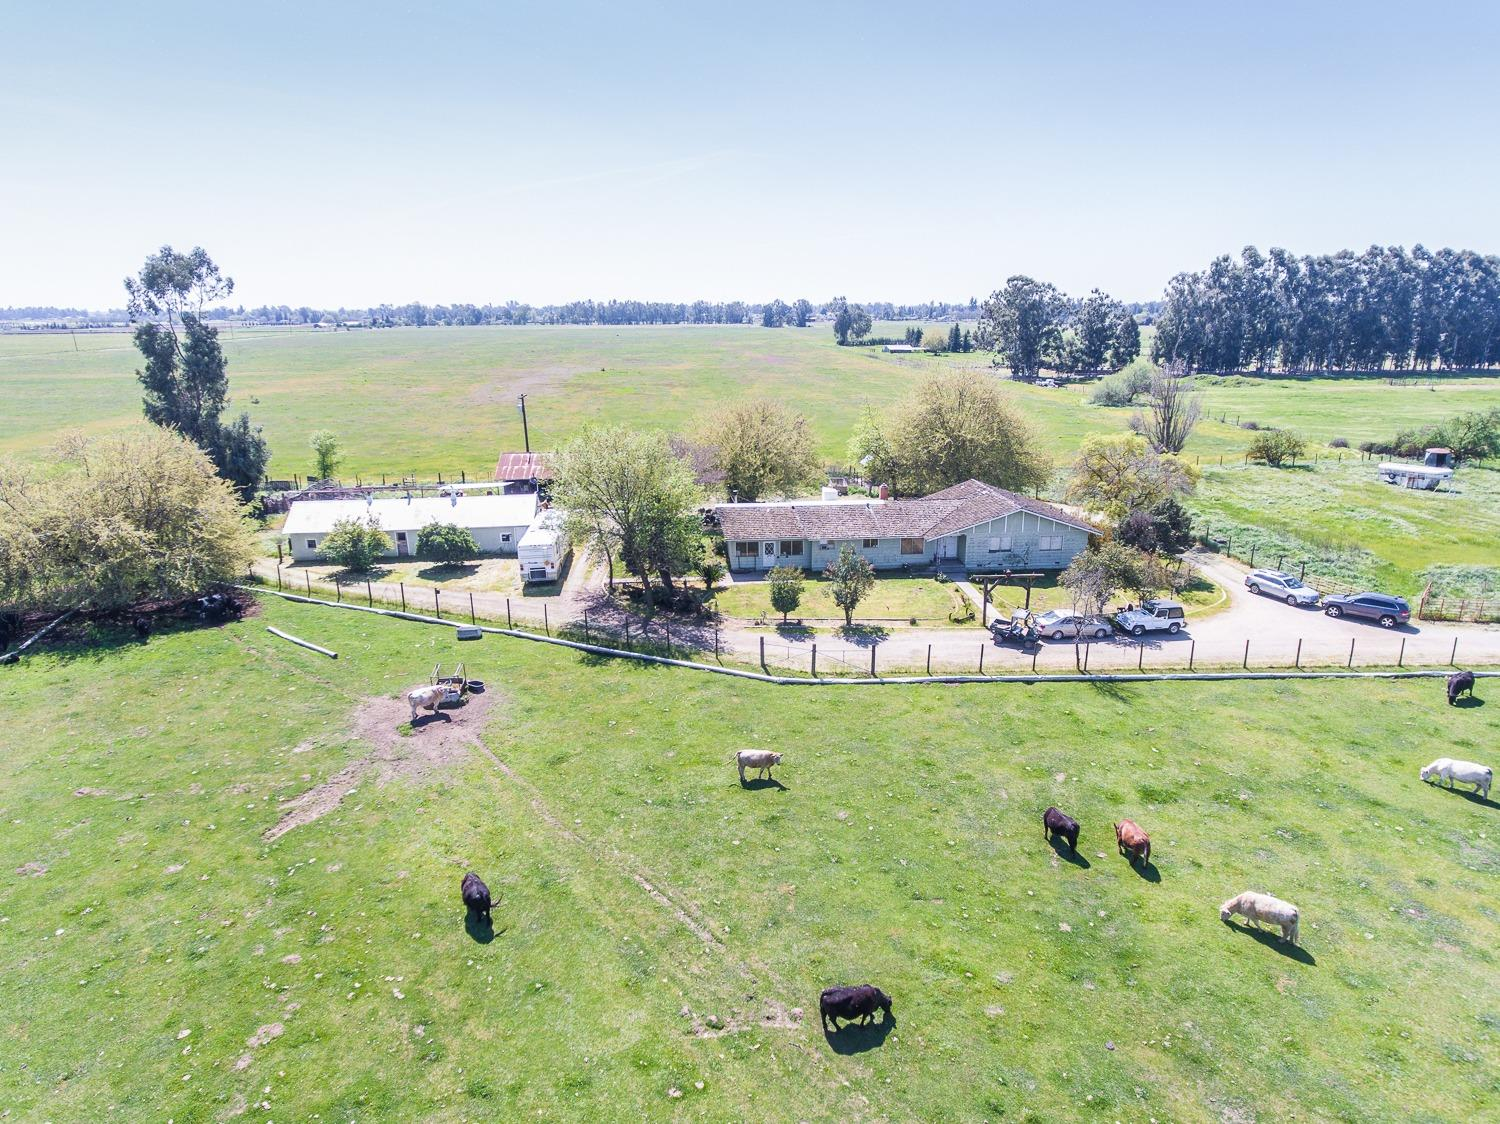 Perfect Site for a Beautiful Equestrian Facility!  This exquisite 20-acre property featuring two creeks meandering through makes it a picturesque setting for an extraordinary Equestrian Ranch.  Located a few blocks from New Home Developments and in path of growth including the new CUSD Janet L Young Elementary School at Shields/Locan due to open this year. It resides within the Clovis Unified School District which strives to be America's benchmark for excellence in education. This property has endless possibilities and an Equestrian Facility  would be a major asset to this community!  The property includes a 2473 s.f House, 60' Pole Barn,  Shop and other Outbuildings.   Two-phase Well: 750 GPM, 1-5 Horse plus FID Water Rights.  The property is fenced.   Dog Creek and Redbank Creek join on the property. No value is given to buildings on the property. Please Call me for more information.  See Virtual Media Aerial Tour!